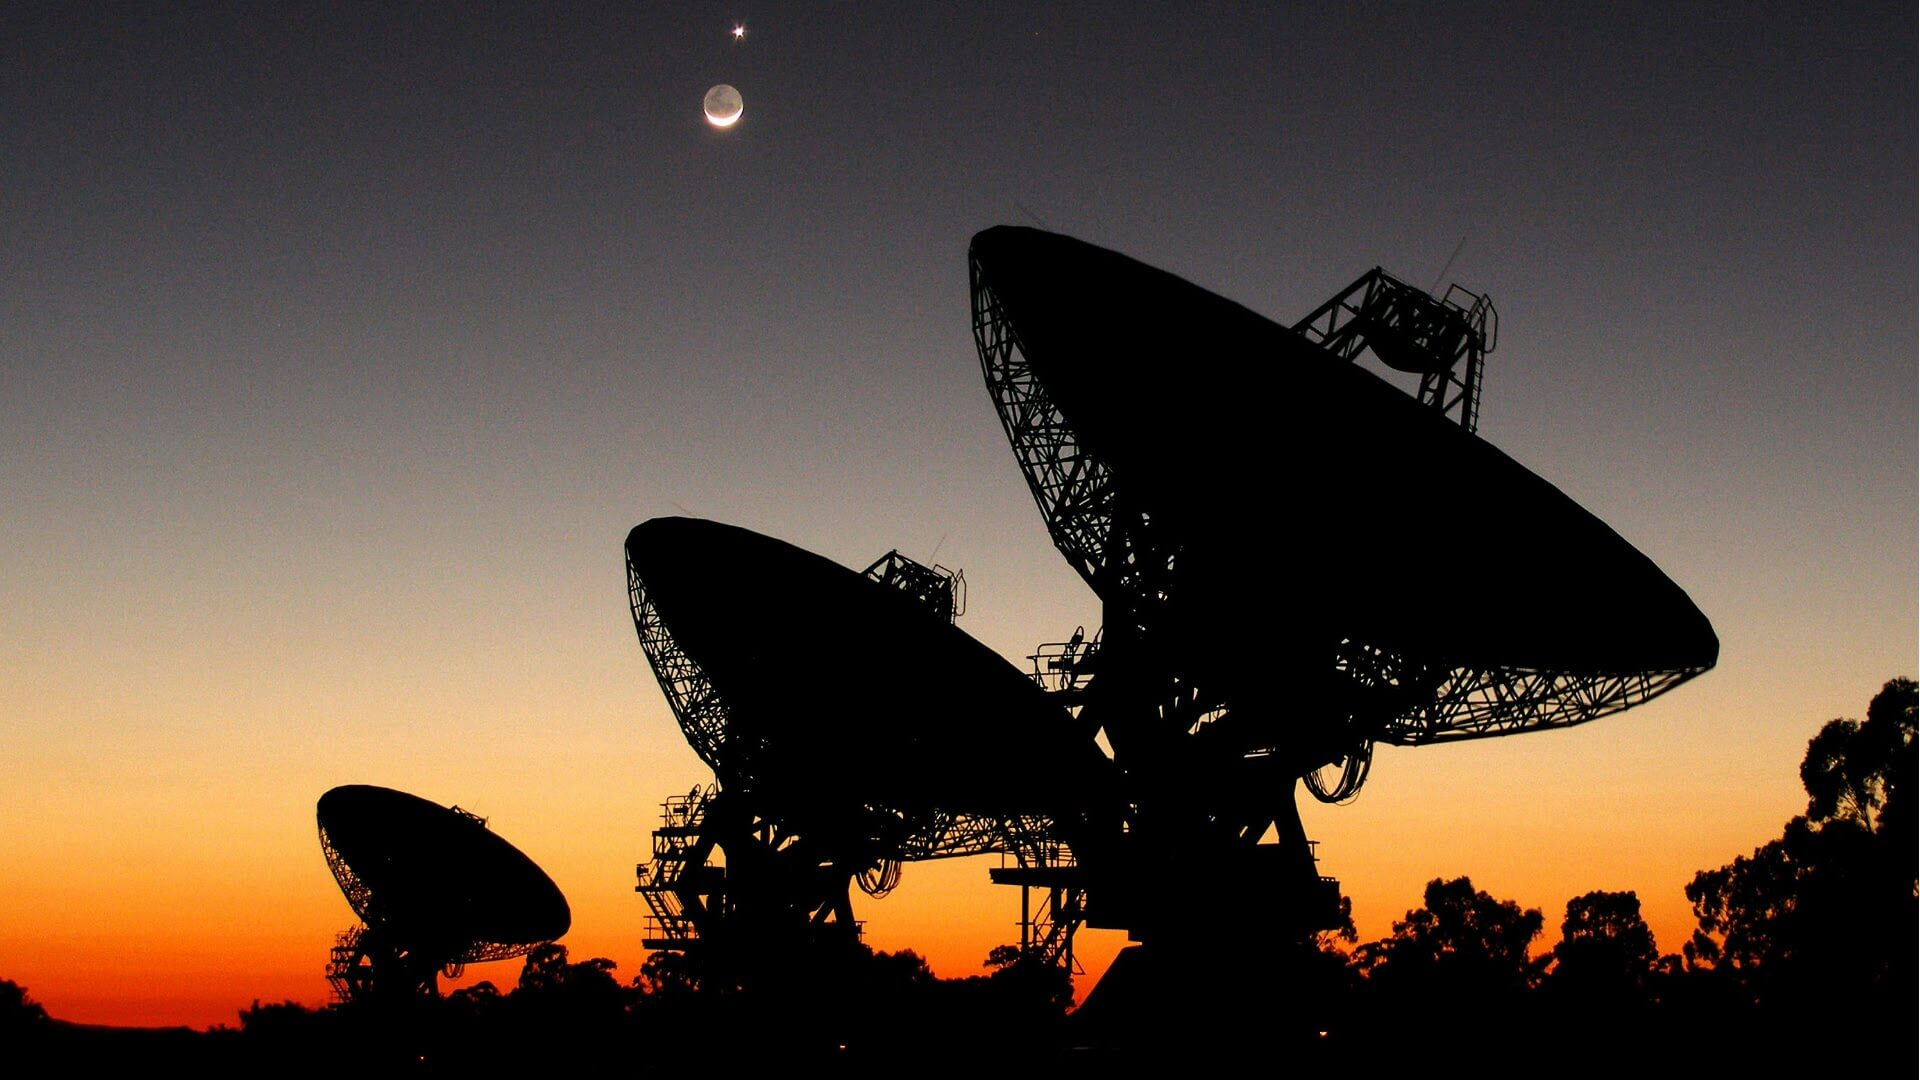 Searching for extraterrestrial life: Finding the right communication technology